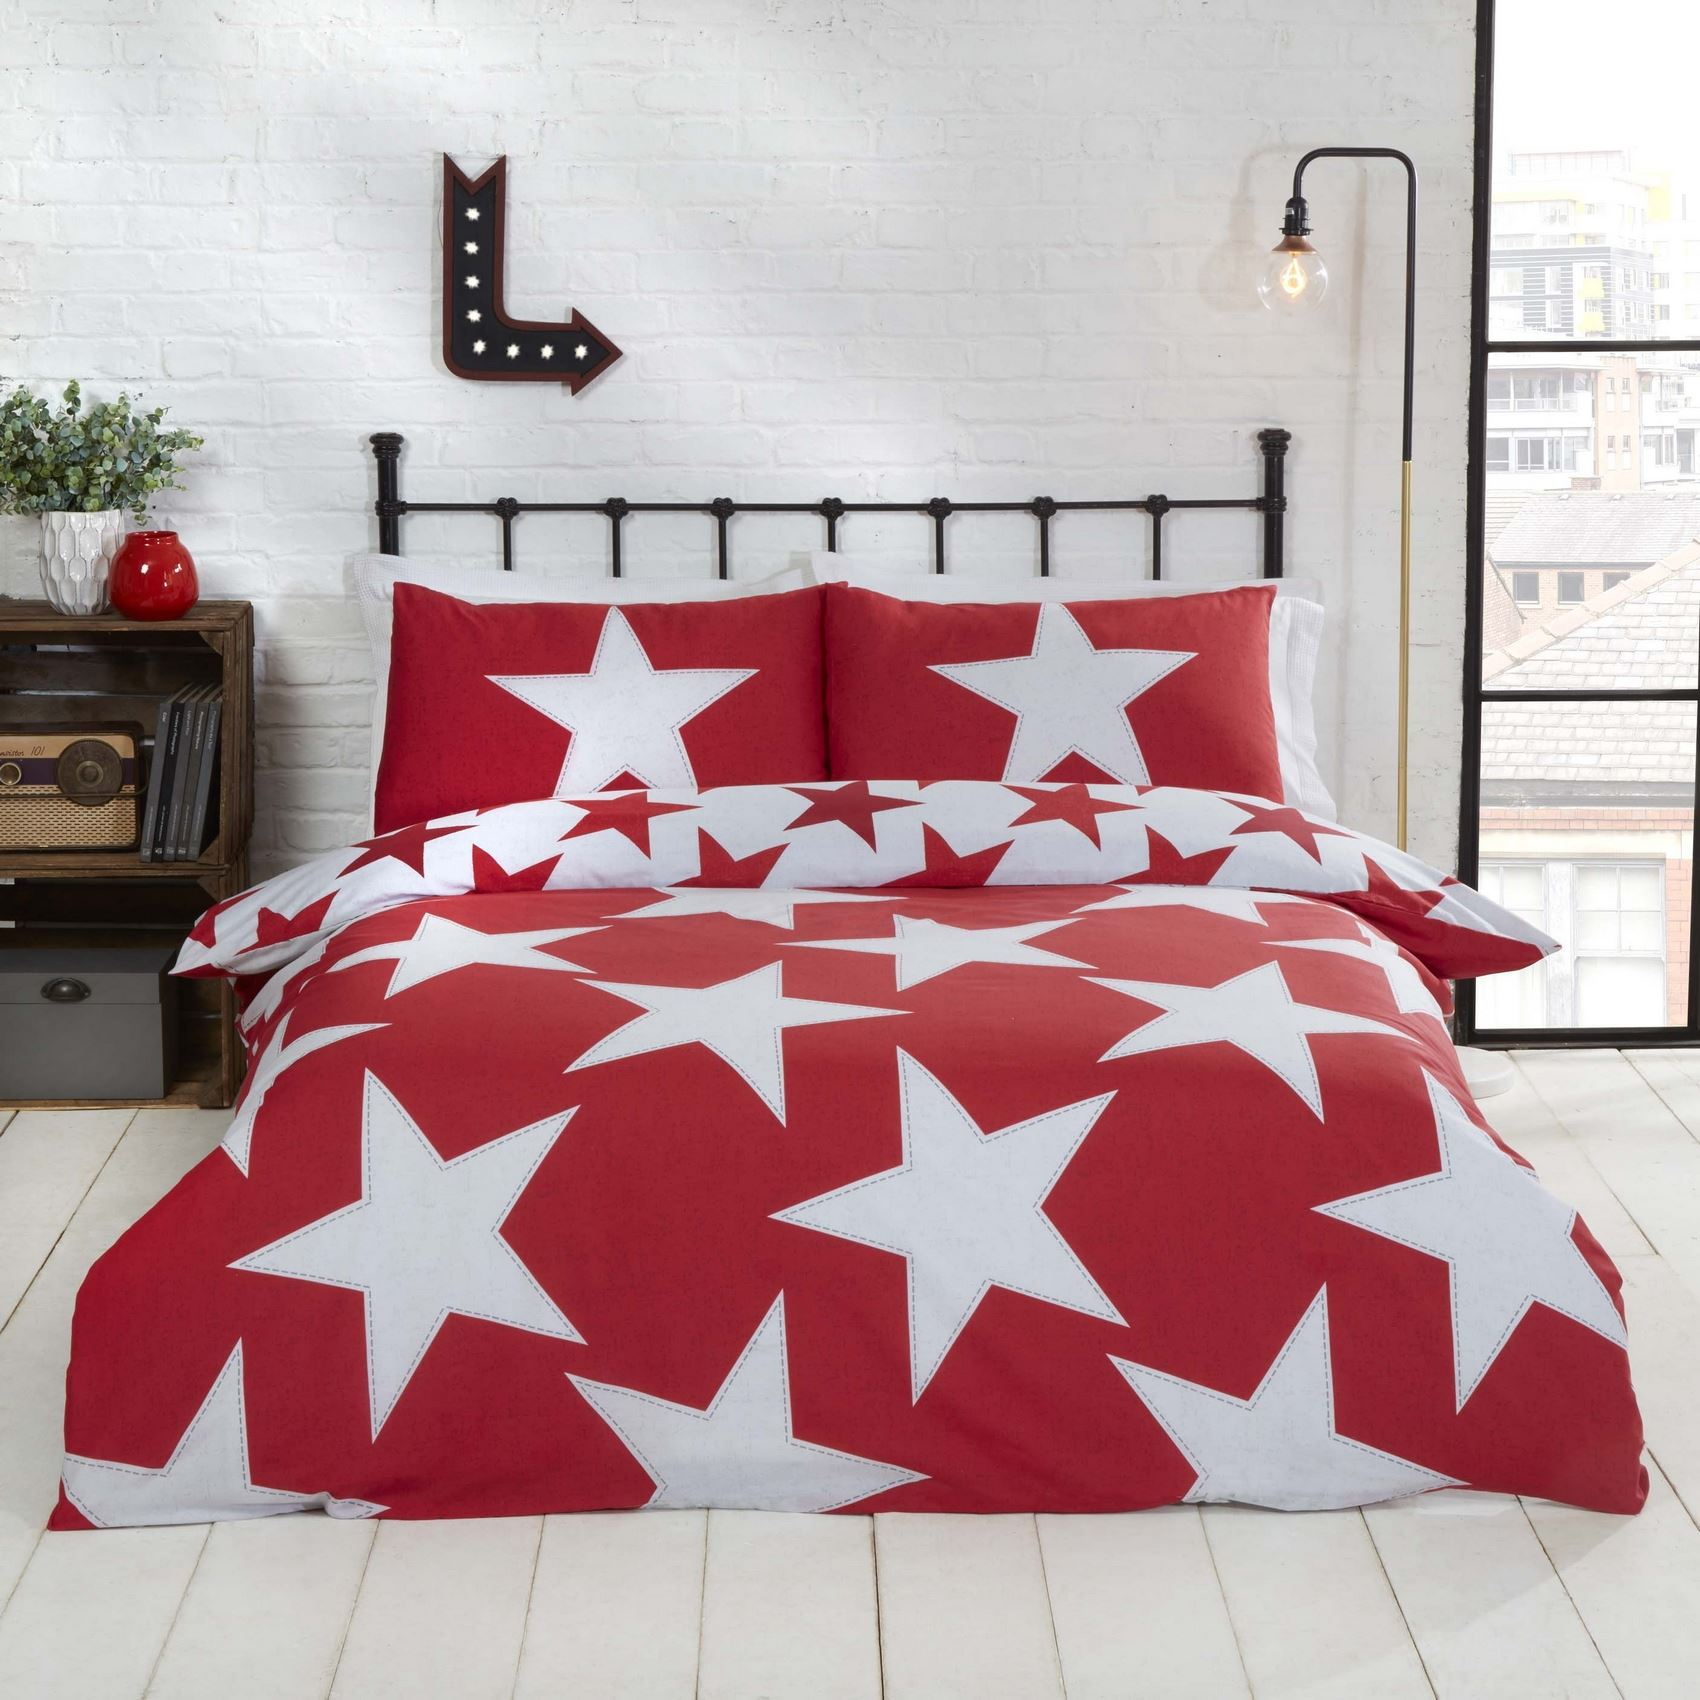 Quilt Duvet Cover Amp Pillowcase Bedding Bed Sets Teenagers